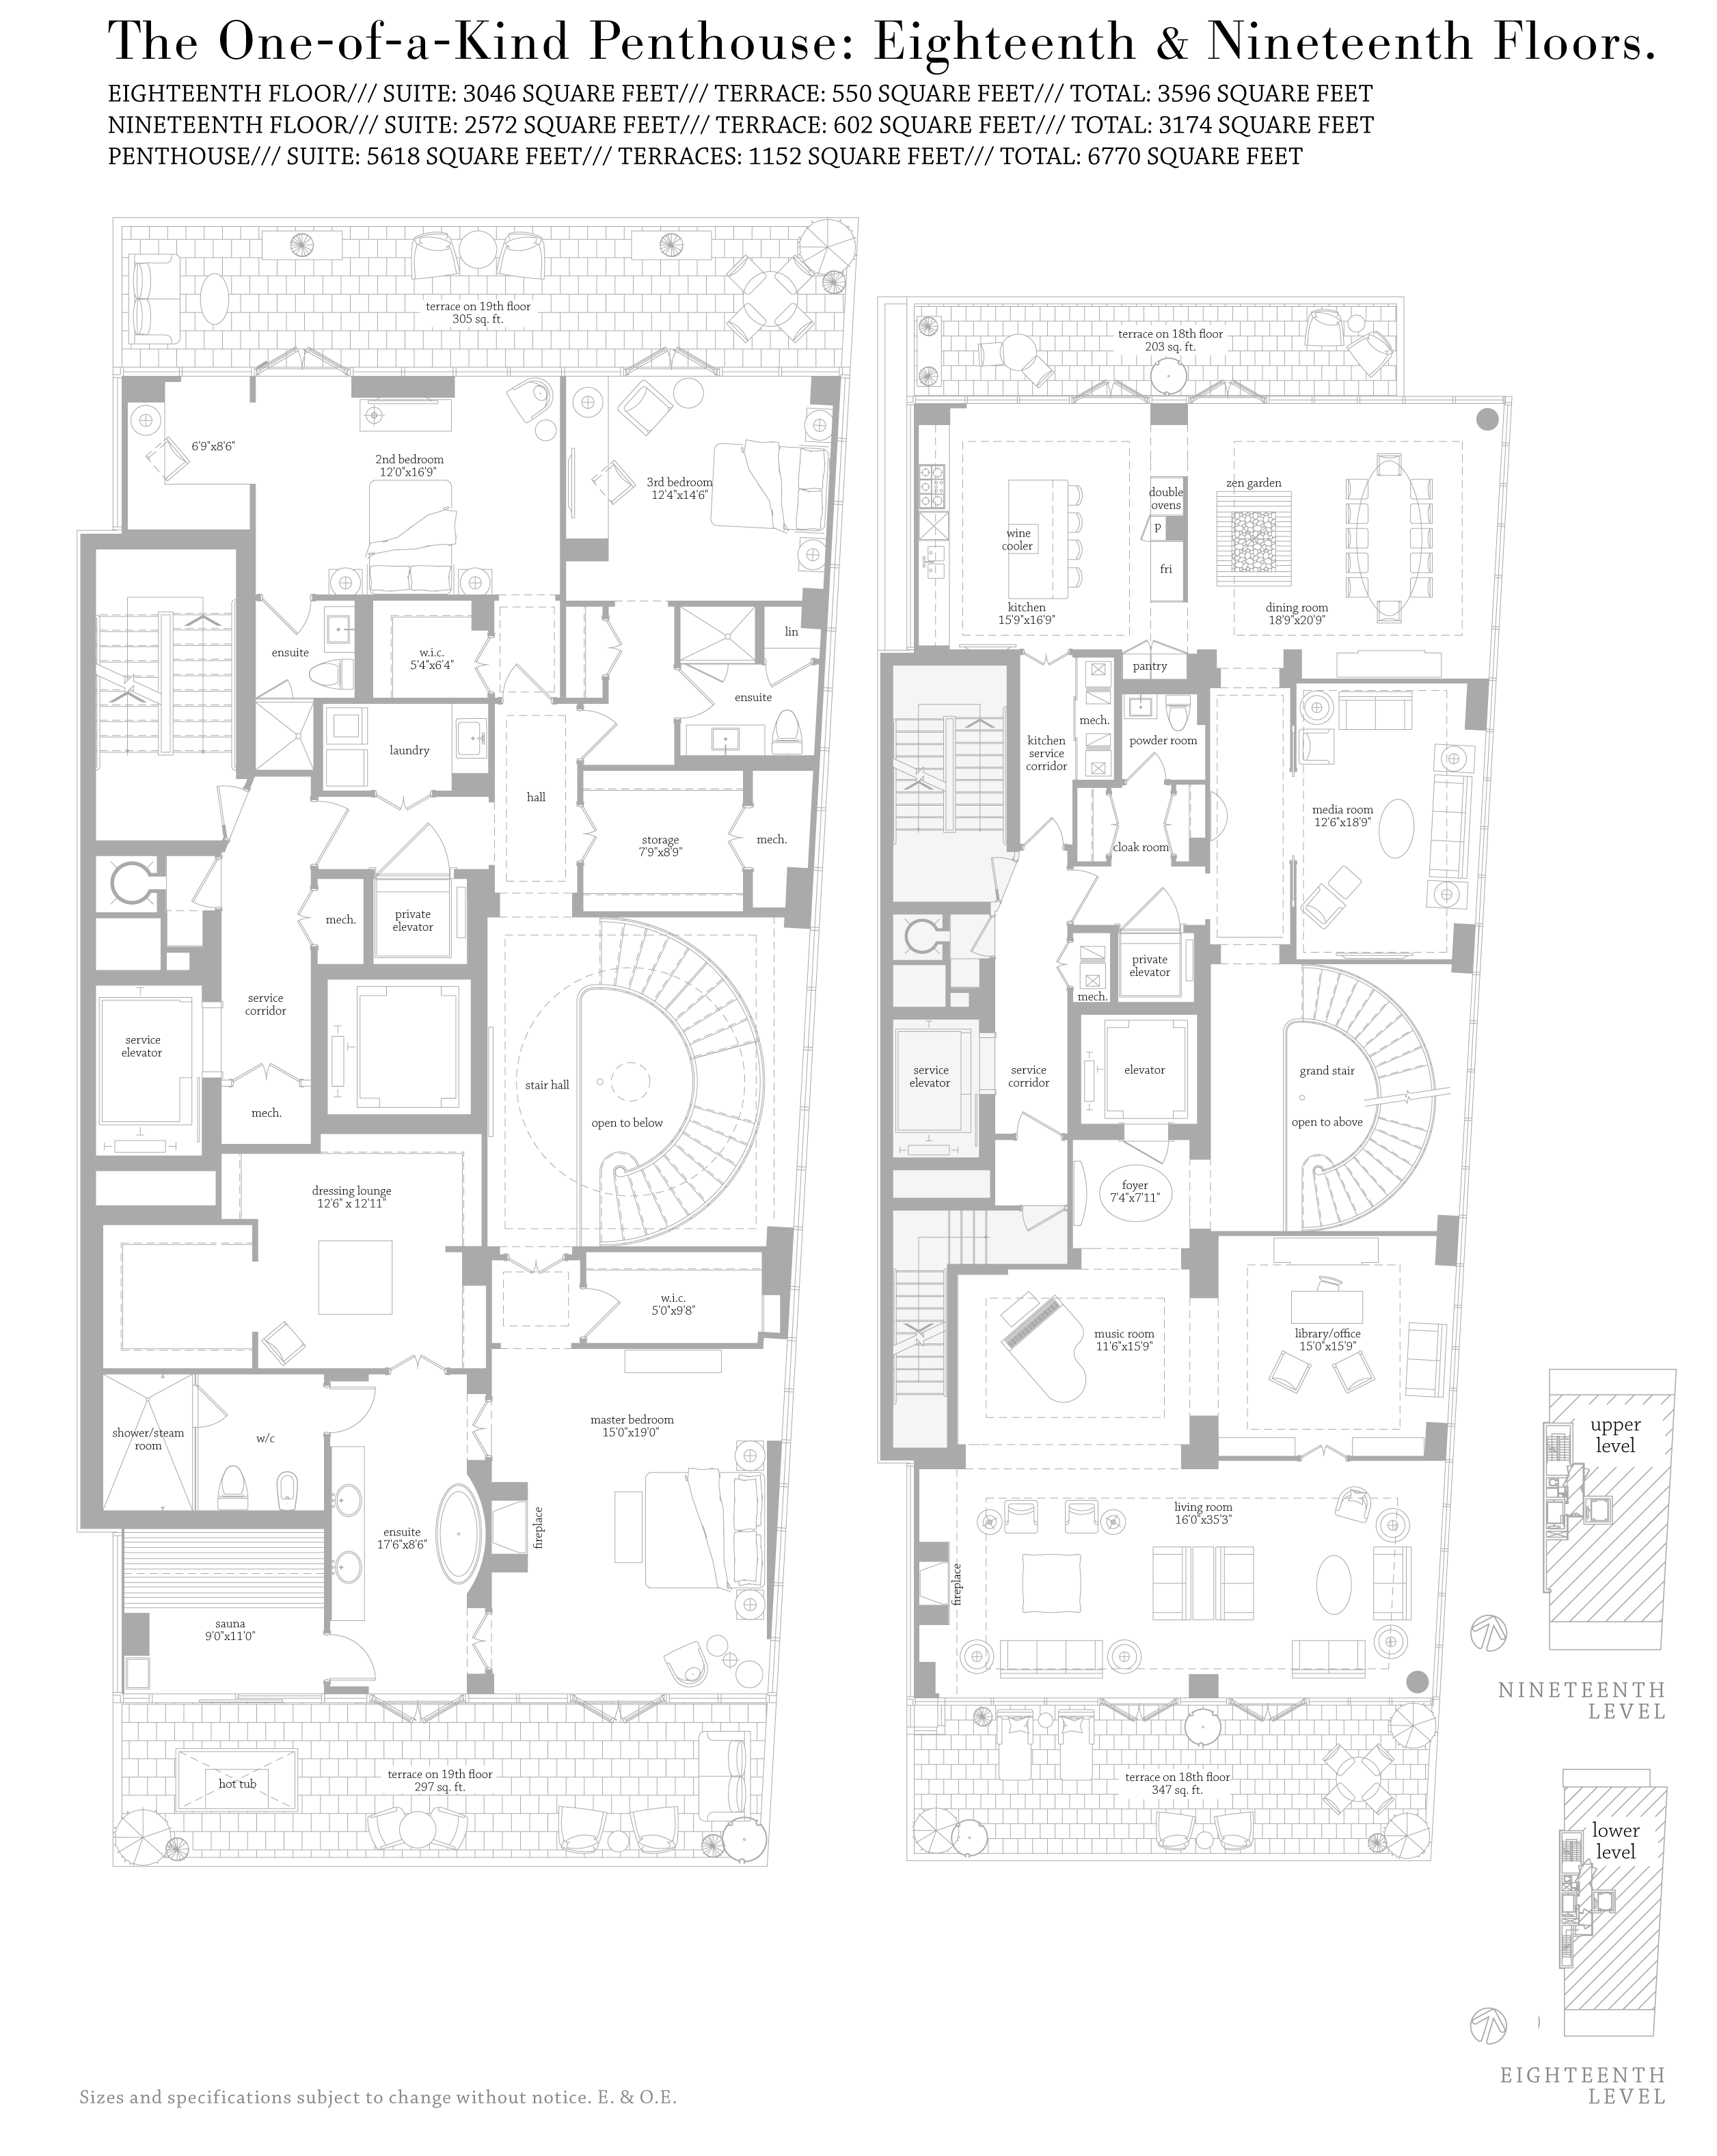 MUSEUM HOUSE FLOORPLANS - PENTHOUSE FLOOR 5,200 SQ FT